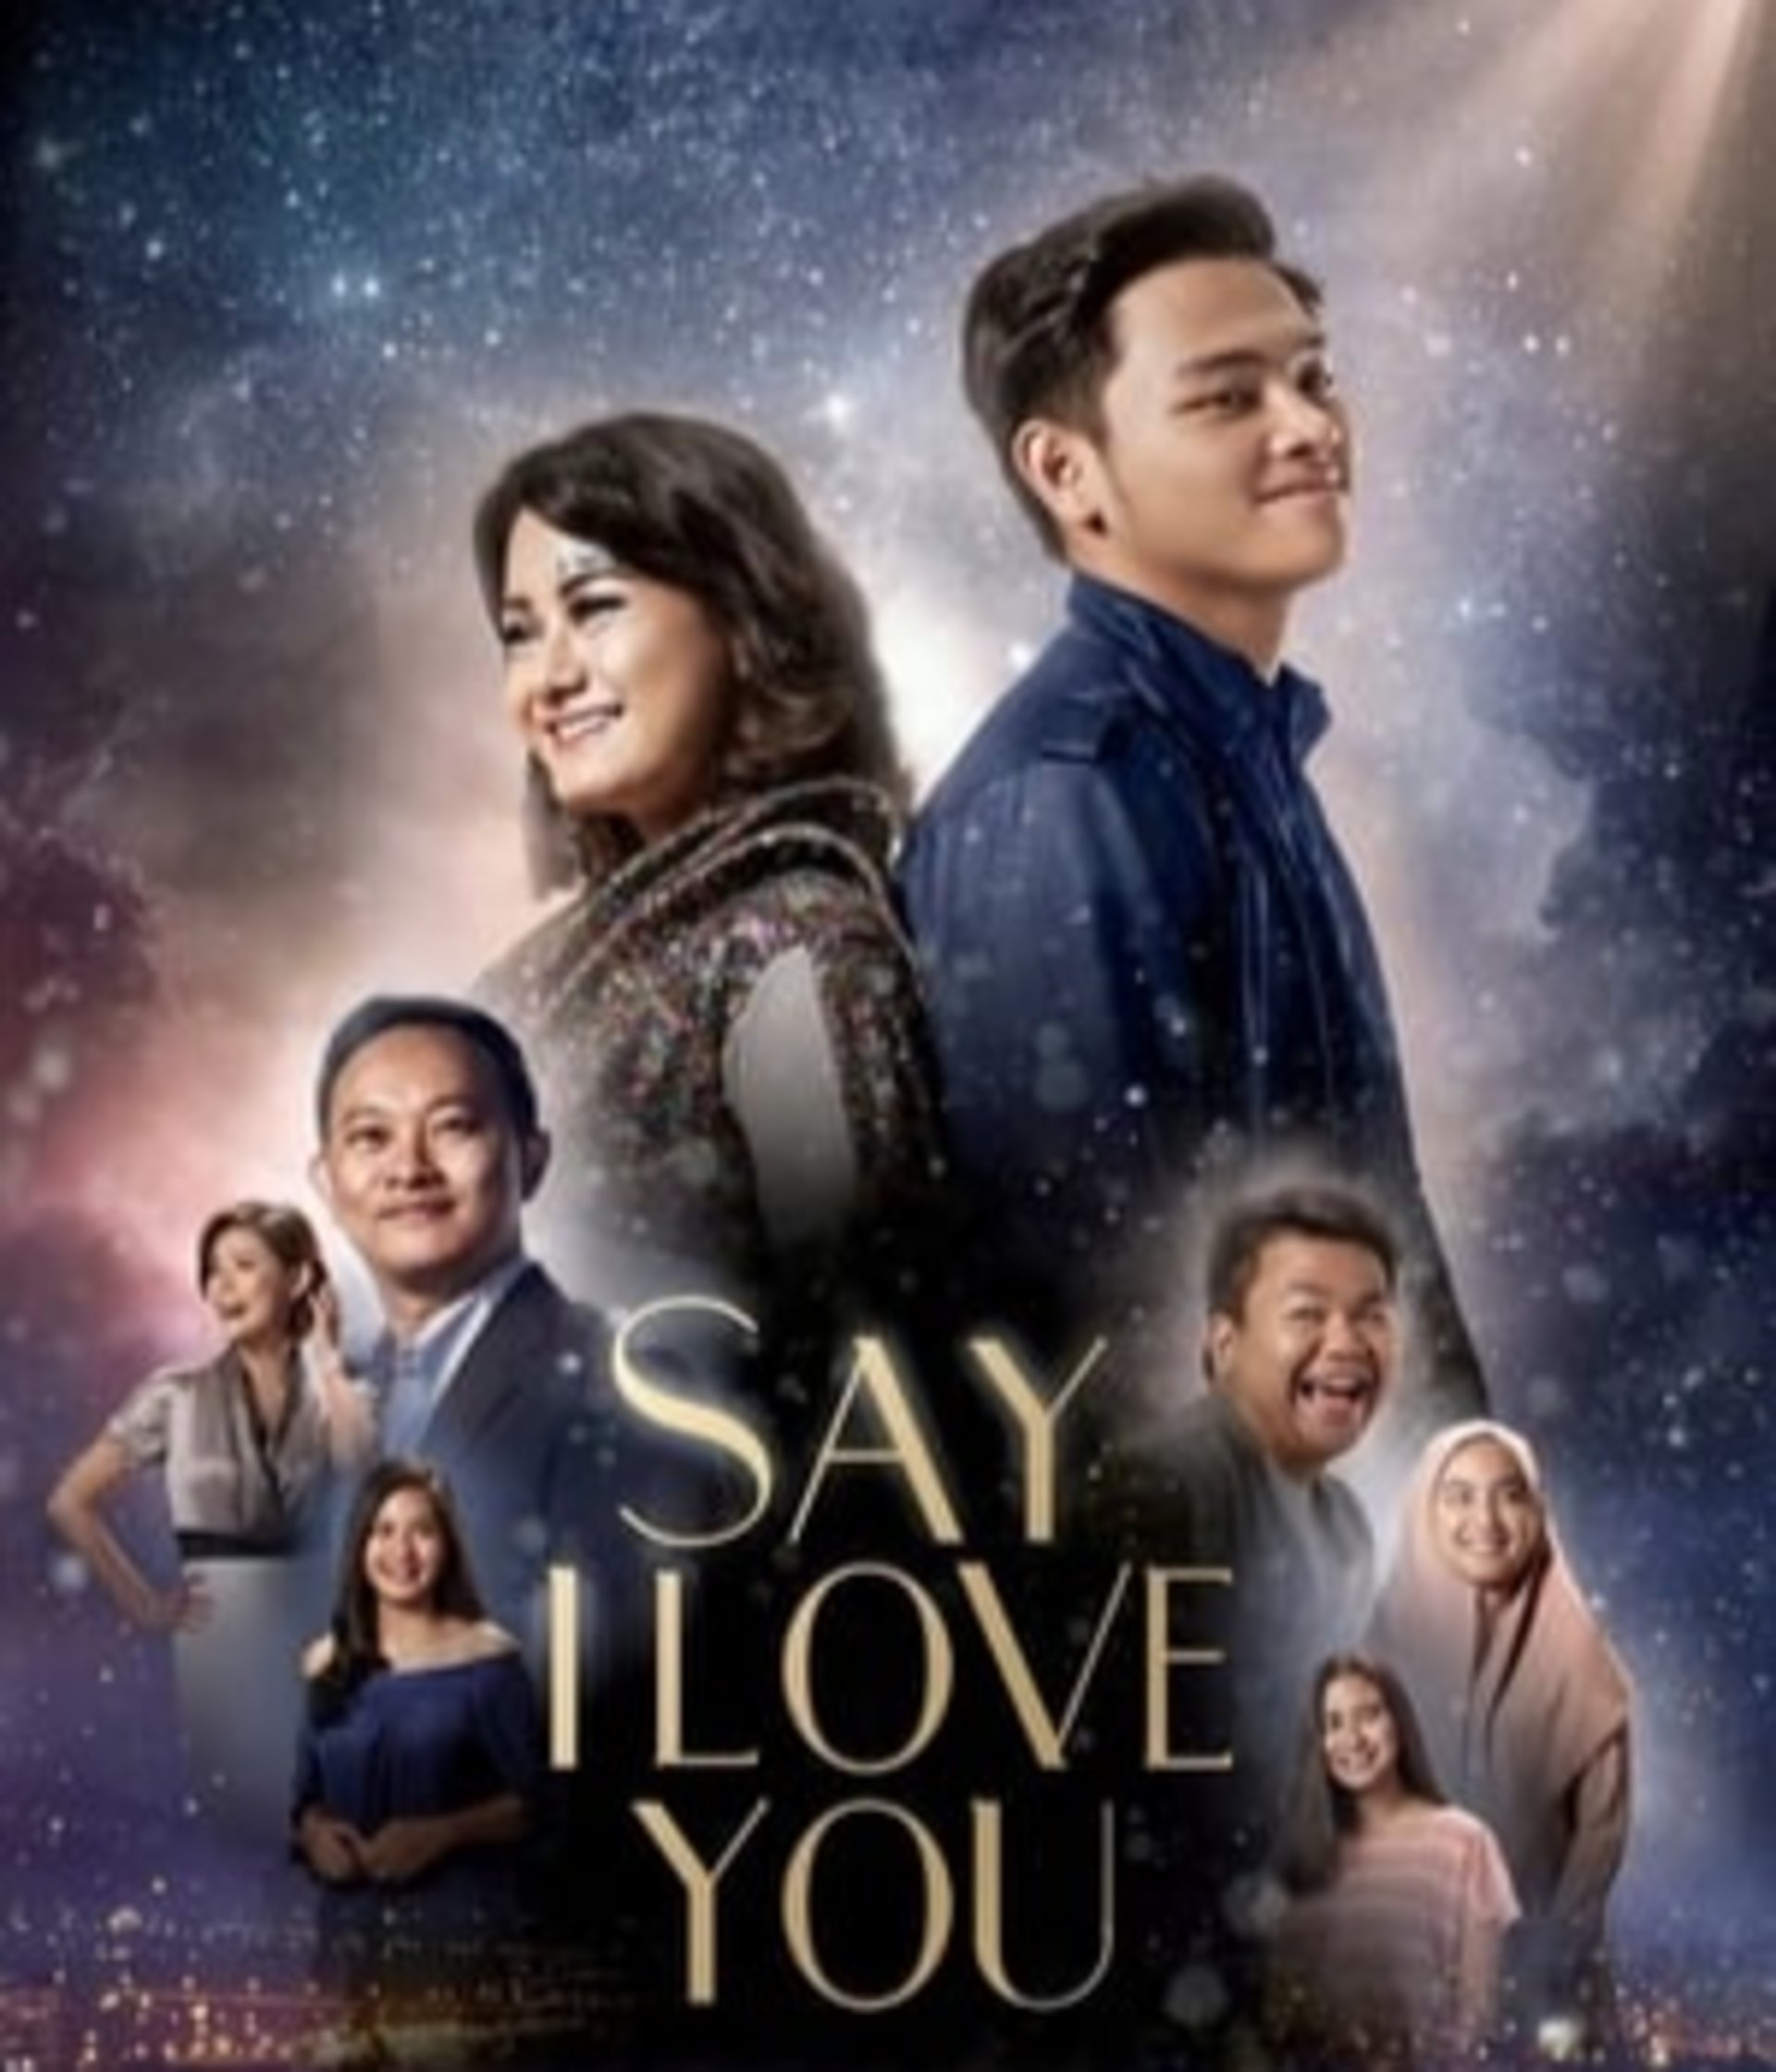 Nonton Film Say I Love You (2019) Full Movie Sub Ino | cnnxxi